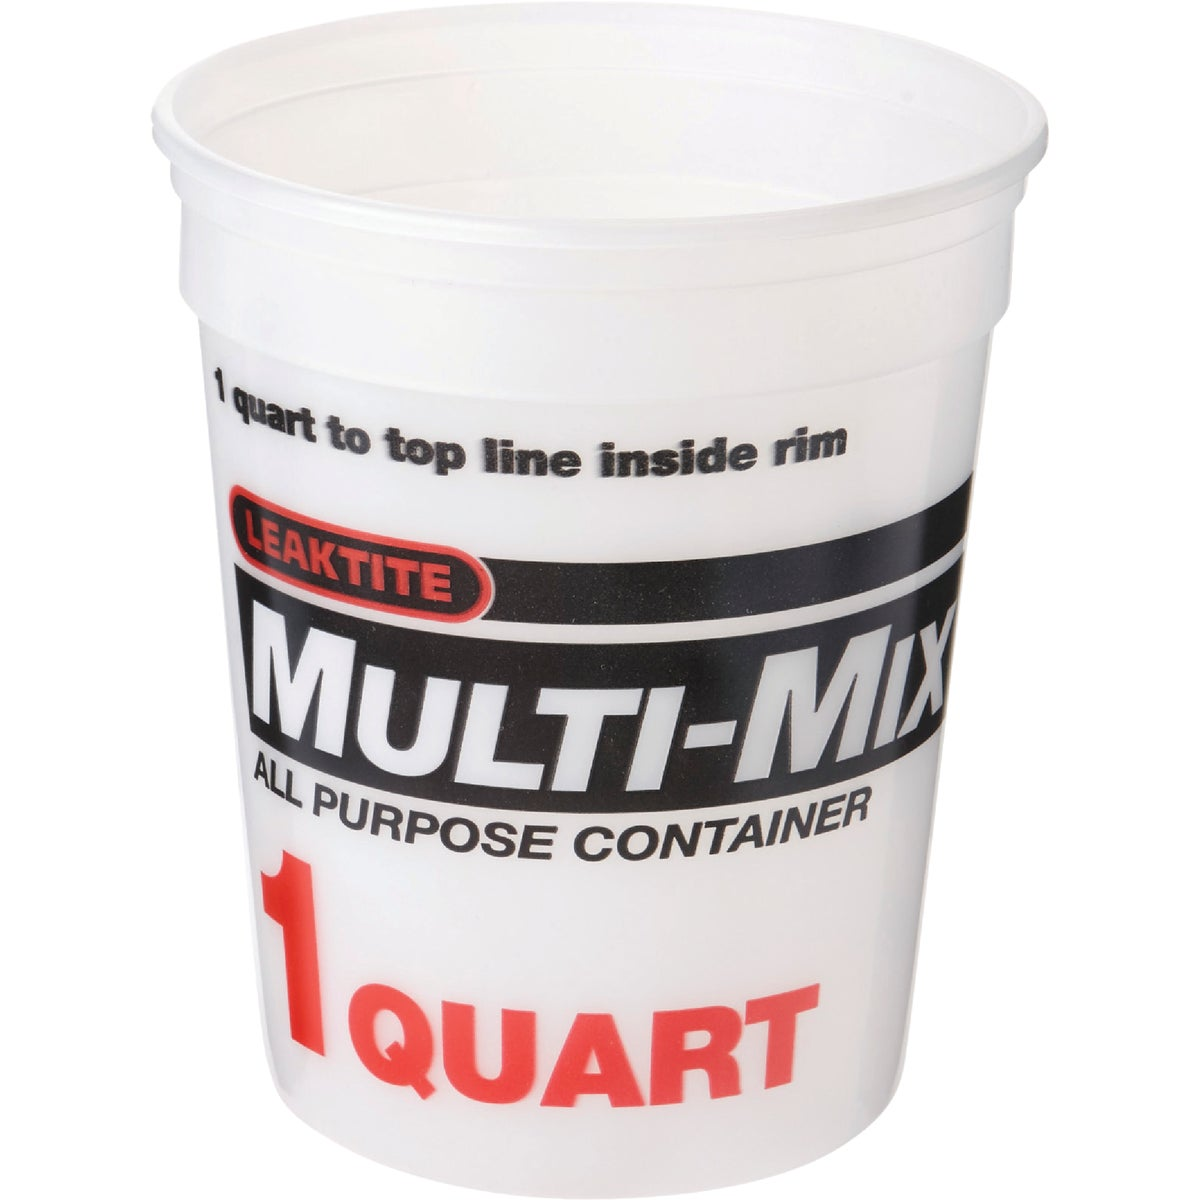 1QT MIXING CONTAINER - 2M3 by Leaktite Corporation